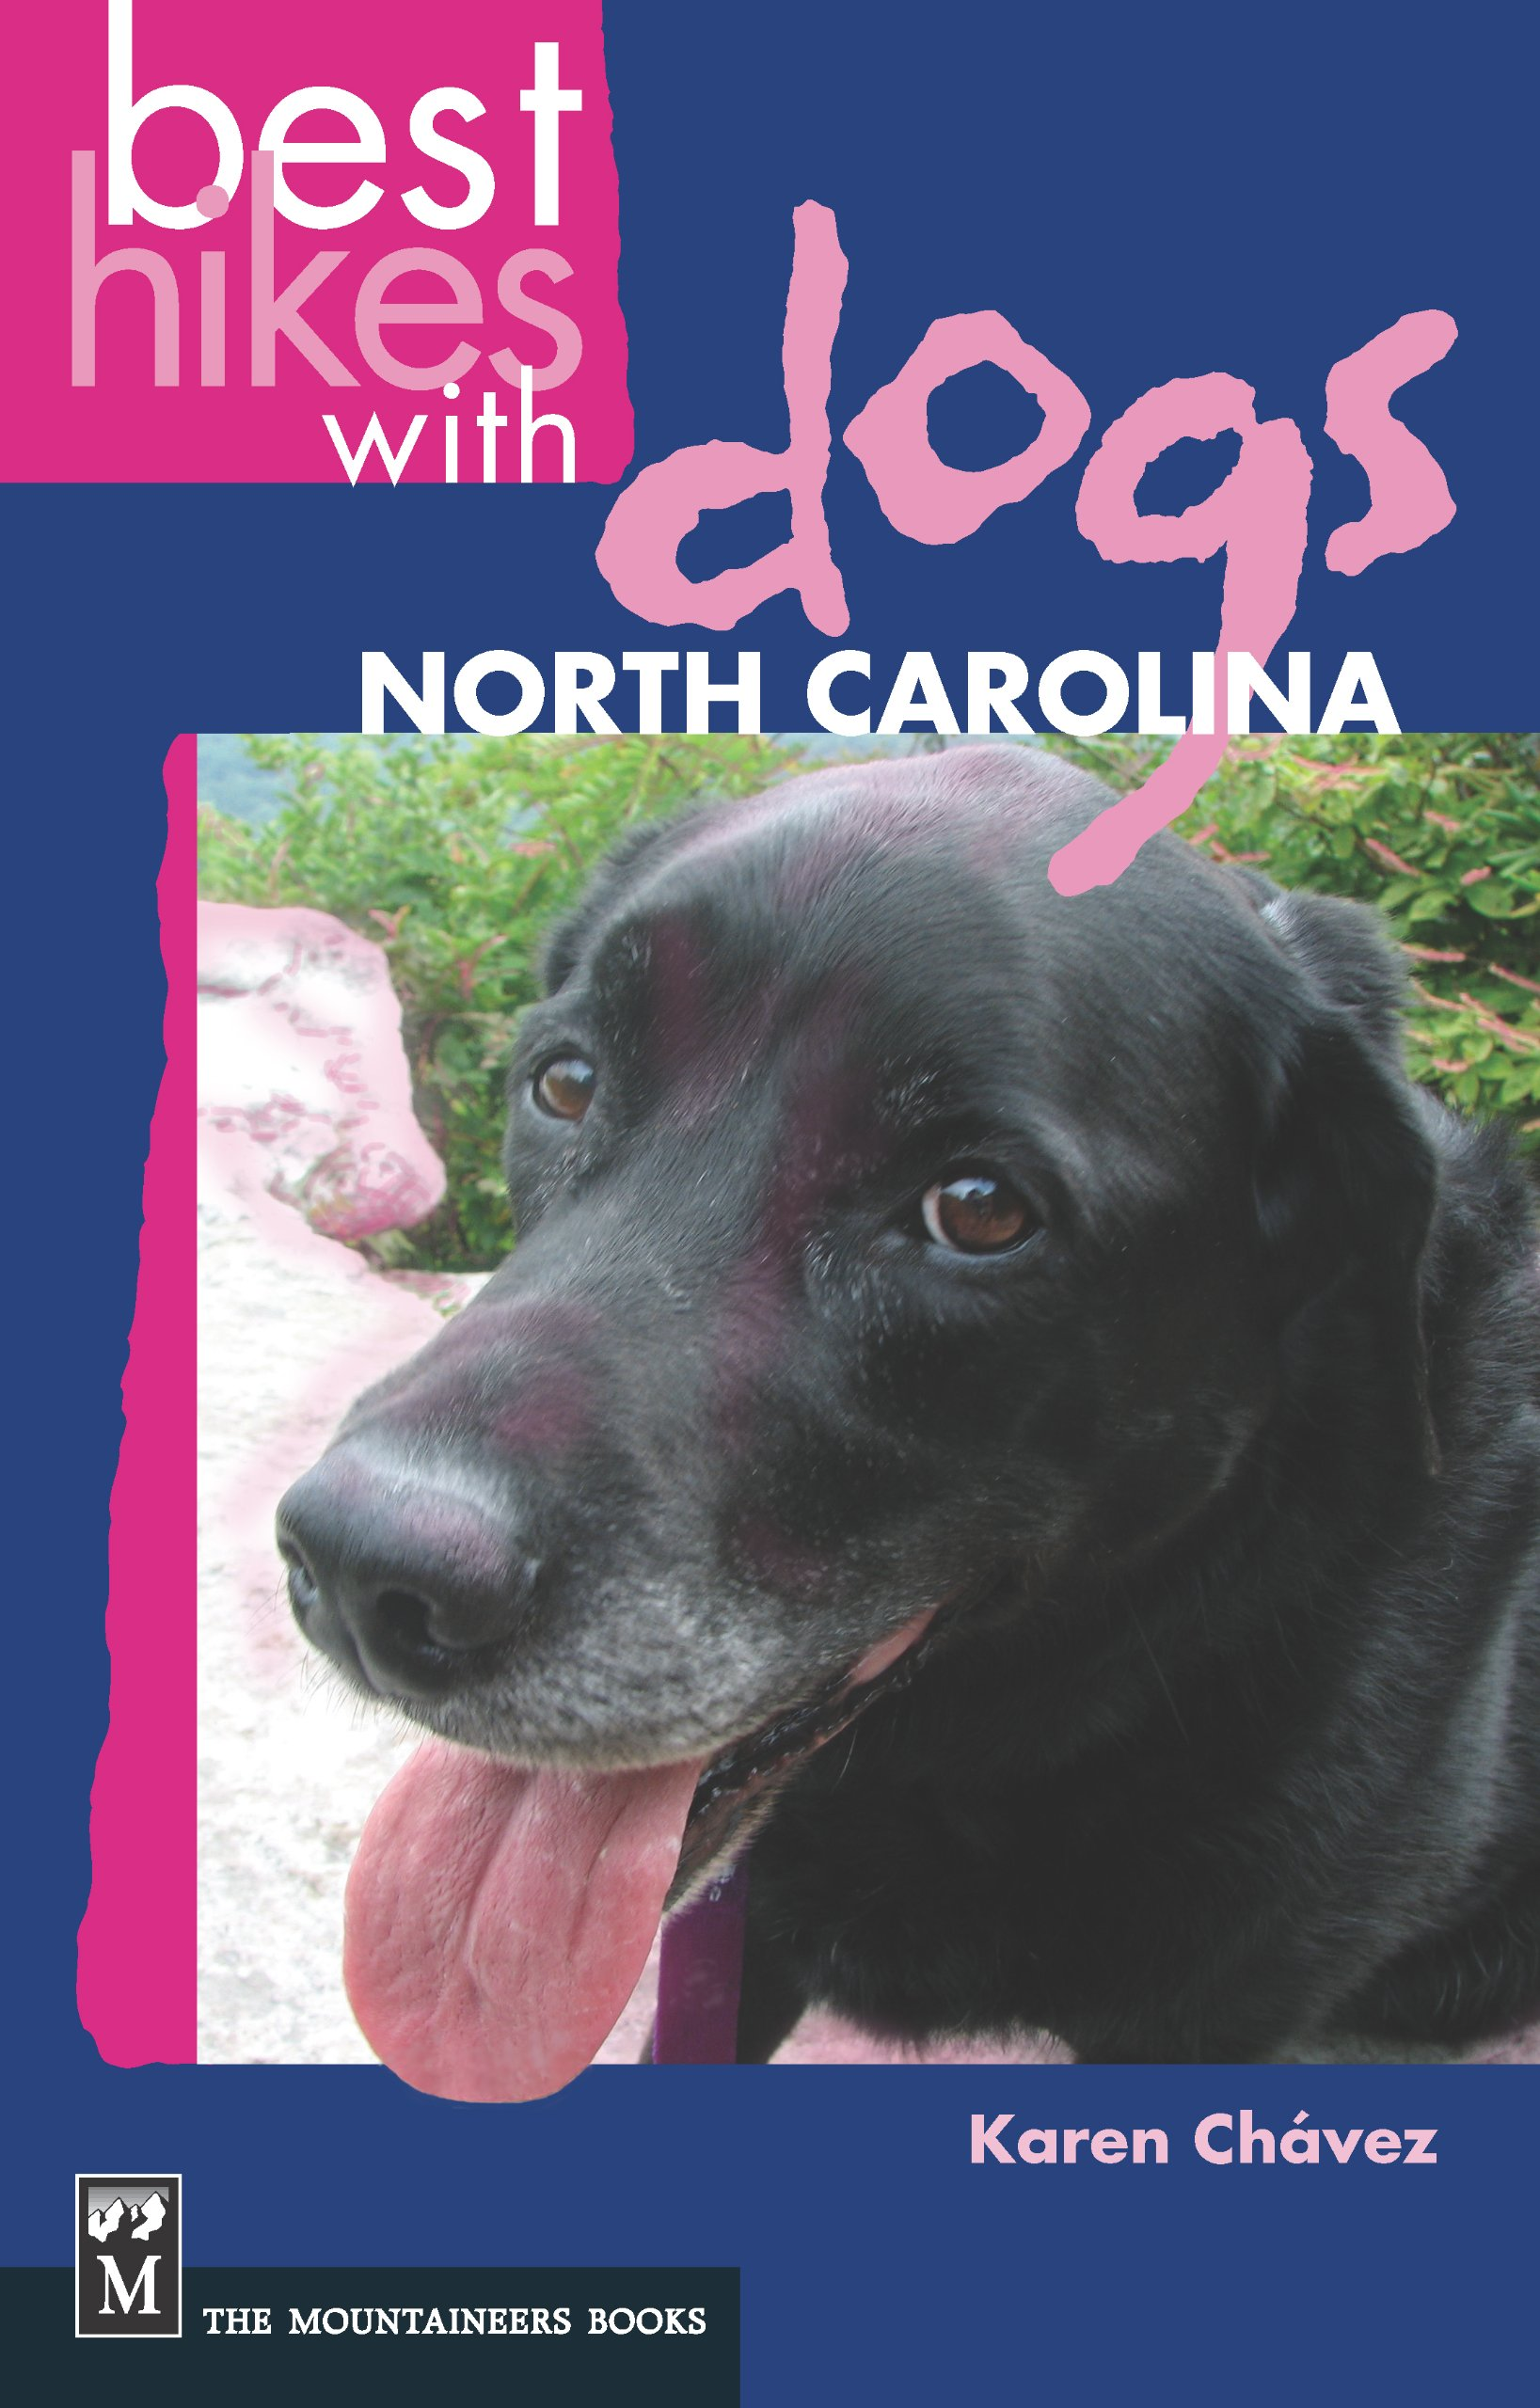 Best hikes with dogs north carolina karen chavez 9781594850554 best hikes with dogs north carolina karen chavez 9781594850554 amazon books fandeluxe Choice Image